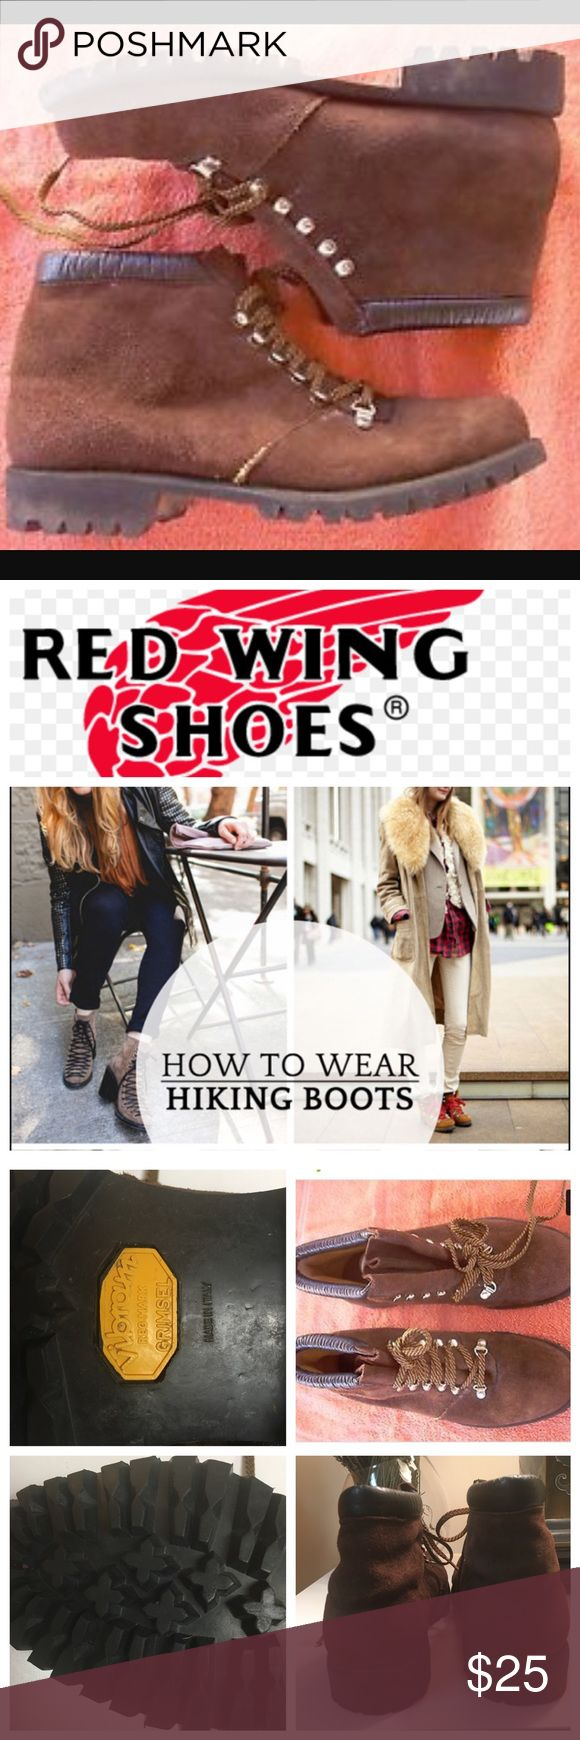 Red wing hiking boots On trend or on the trail! These Red Wing Hiking boots will make you feel on top of the world!! Minimal wear due to being a tad too tight for my comfort! Missing insole because I thought I would give me more room for comfort and now I cannot find it!!! Red Wing Shoes Shoes Ankle Boots & Booties